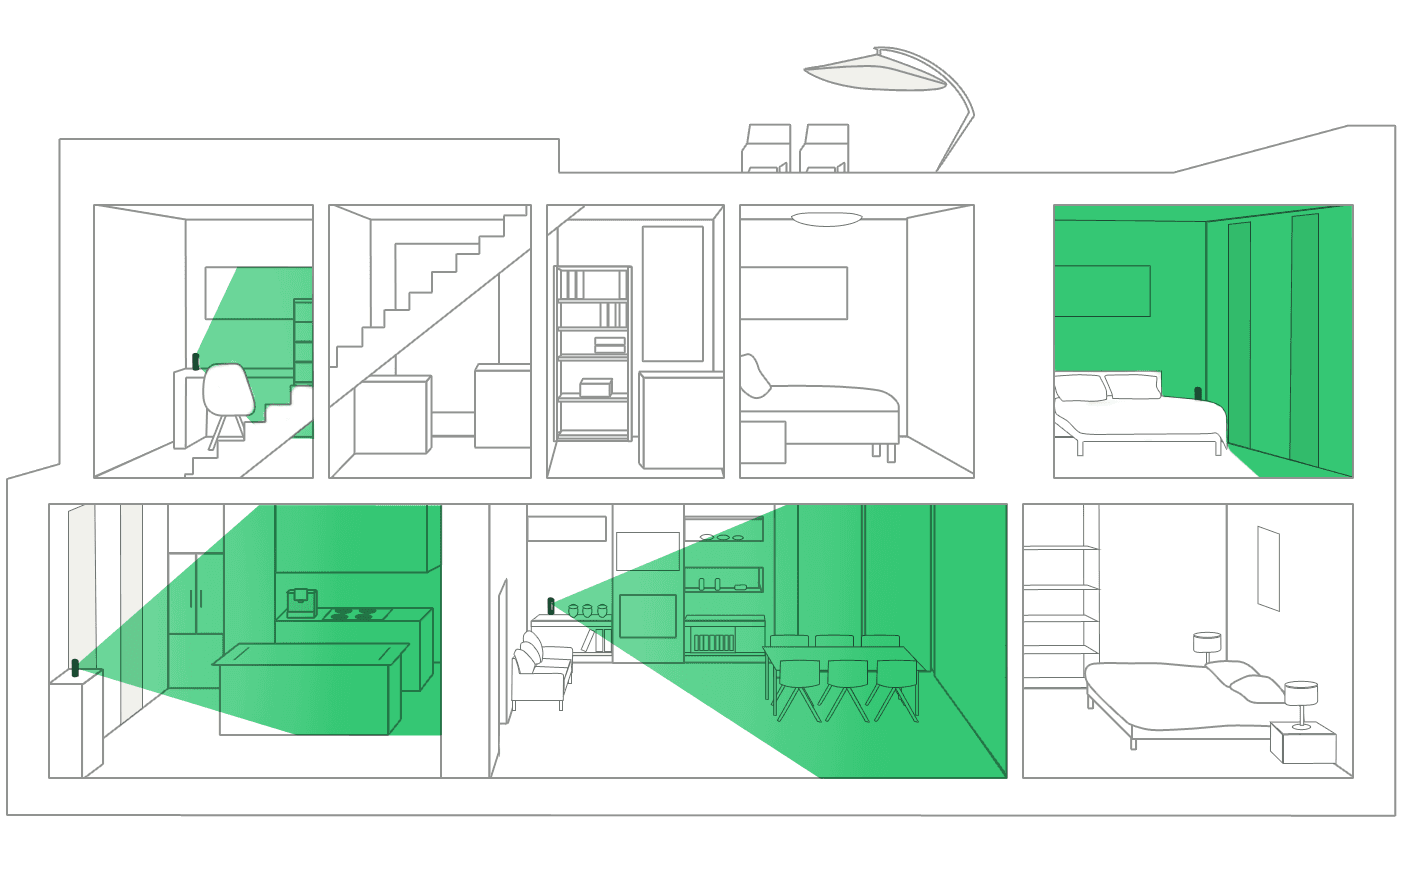 Spatial drawing movement architecture. How hayo works takes